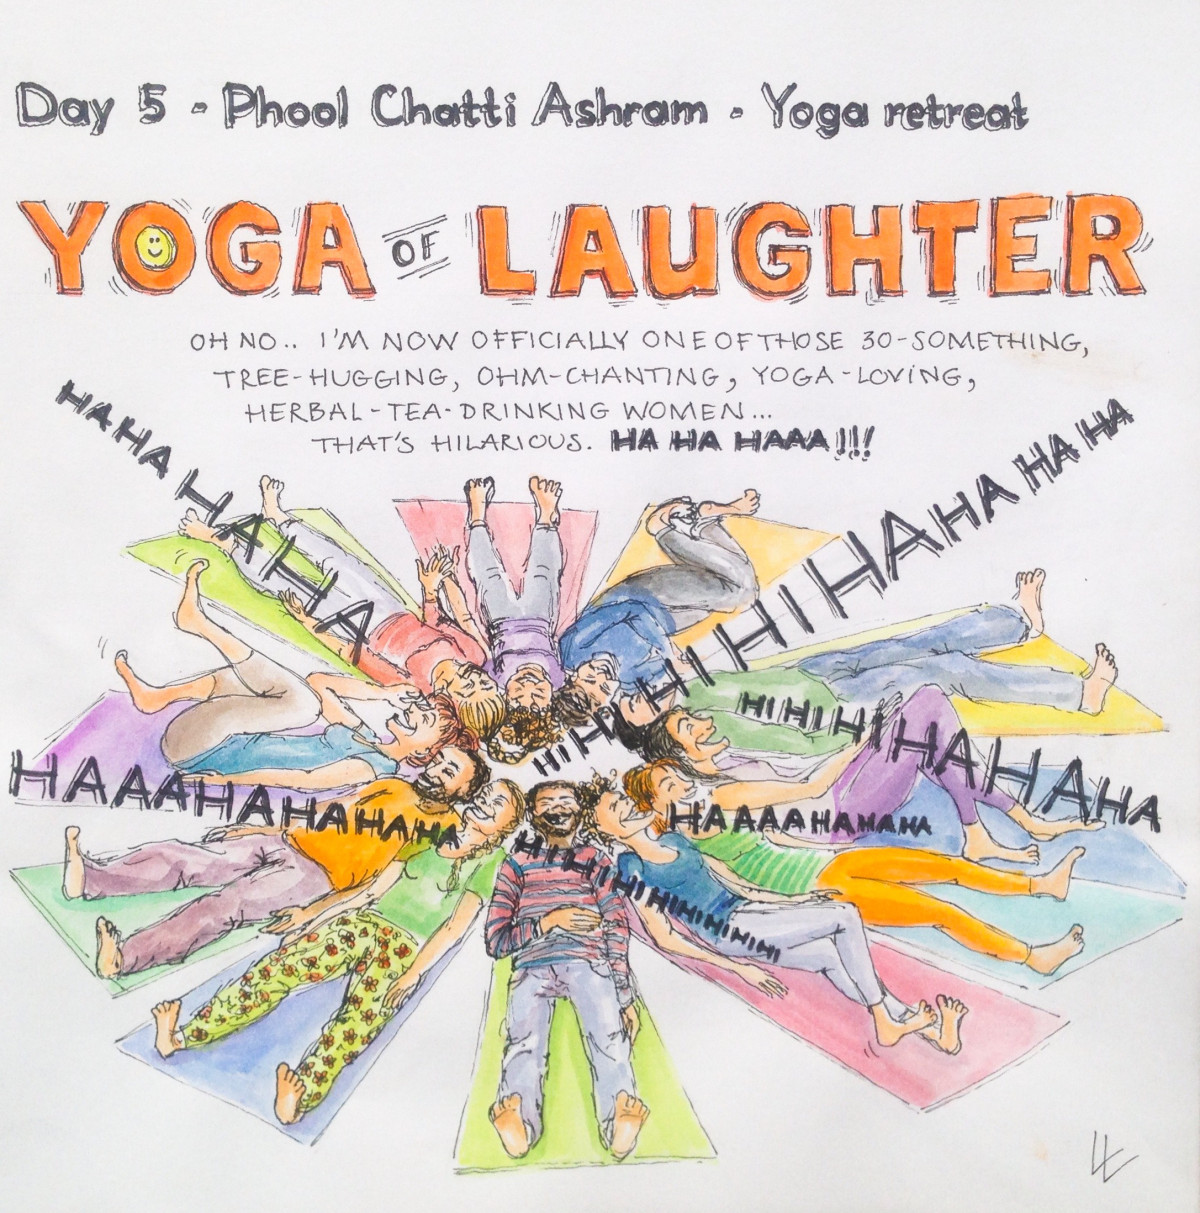 5 - Yoga of laughter